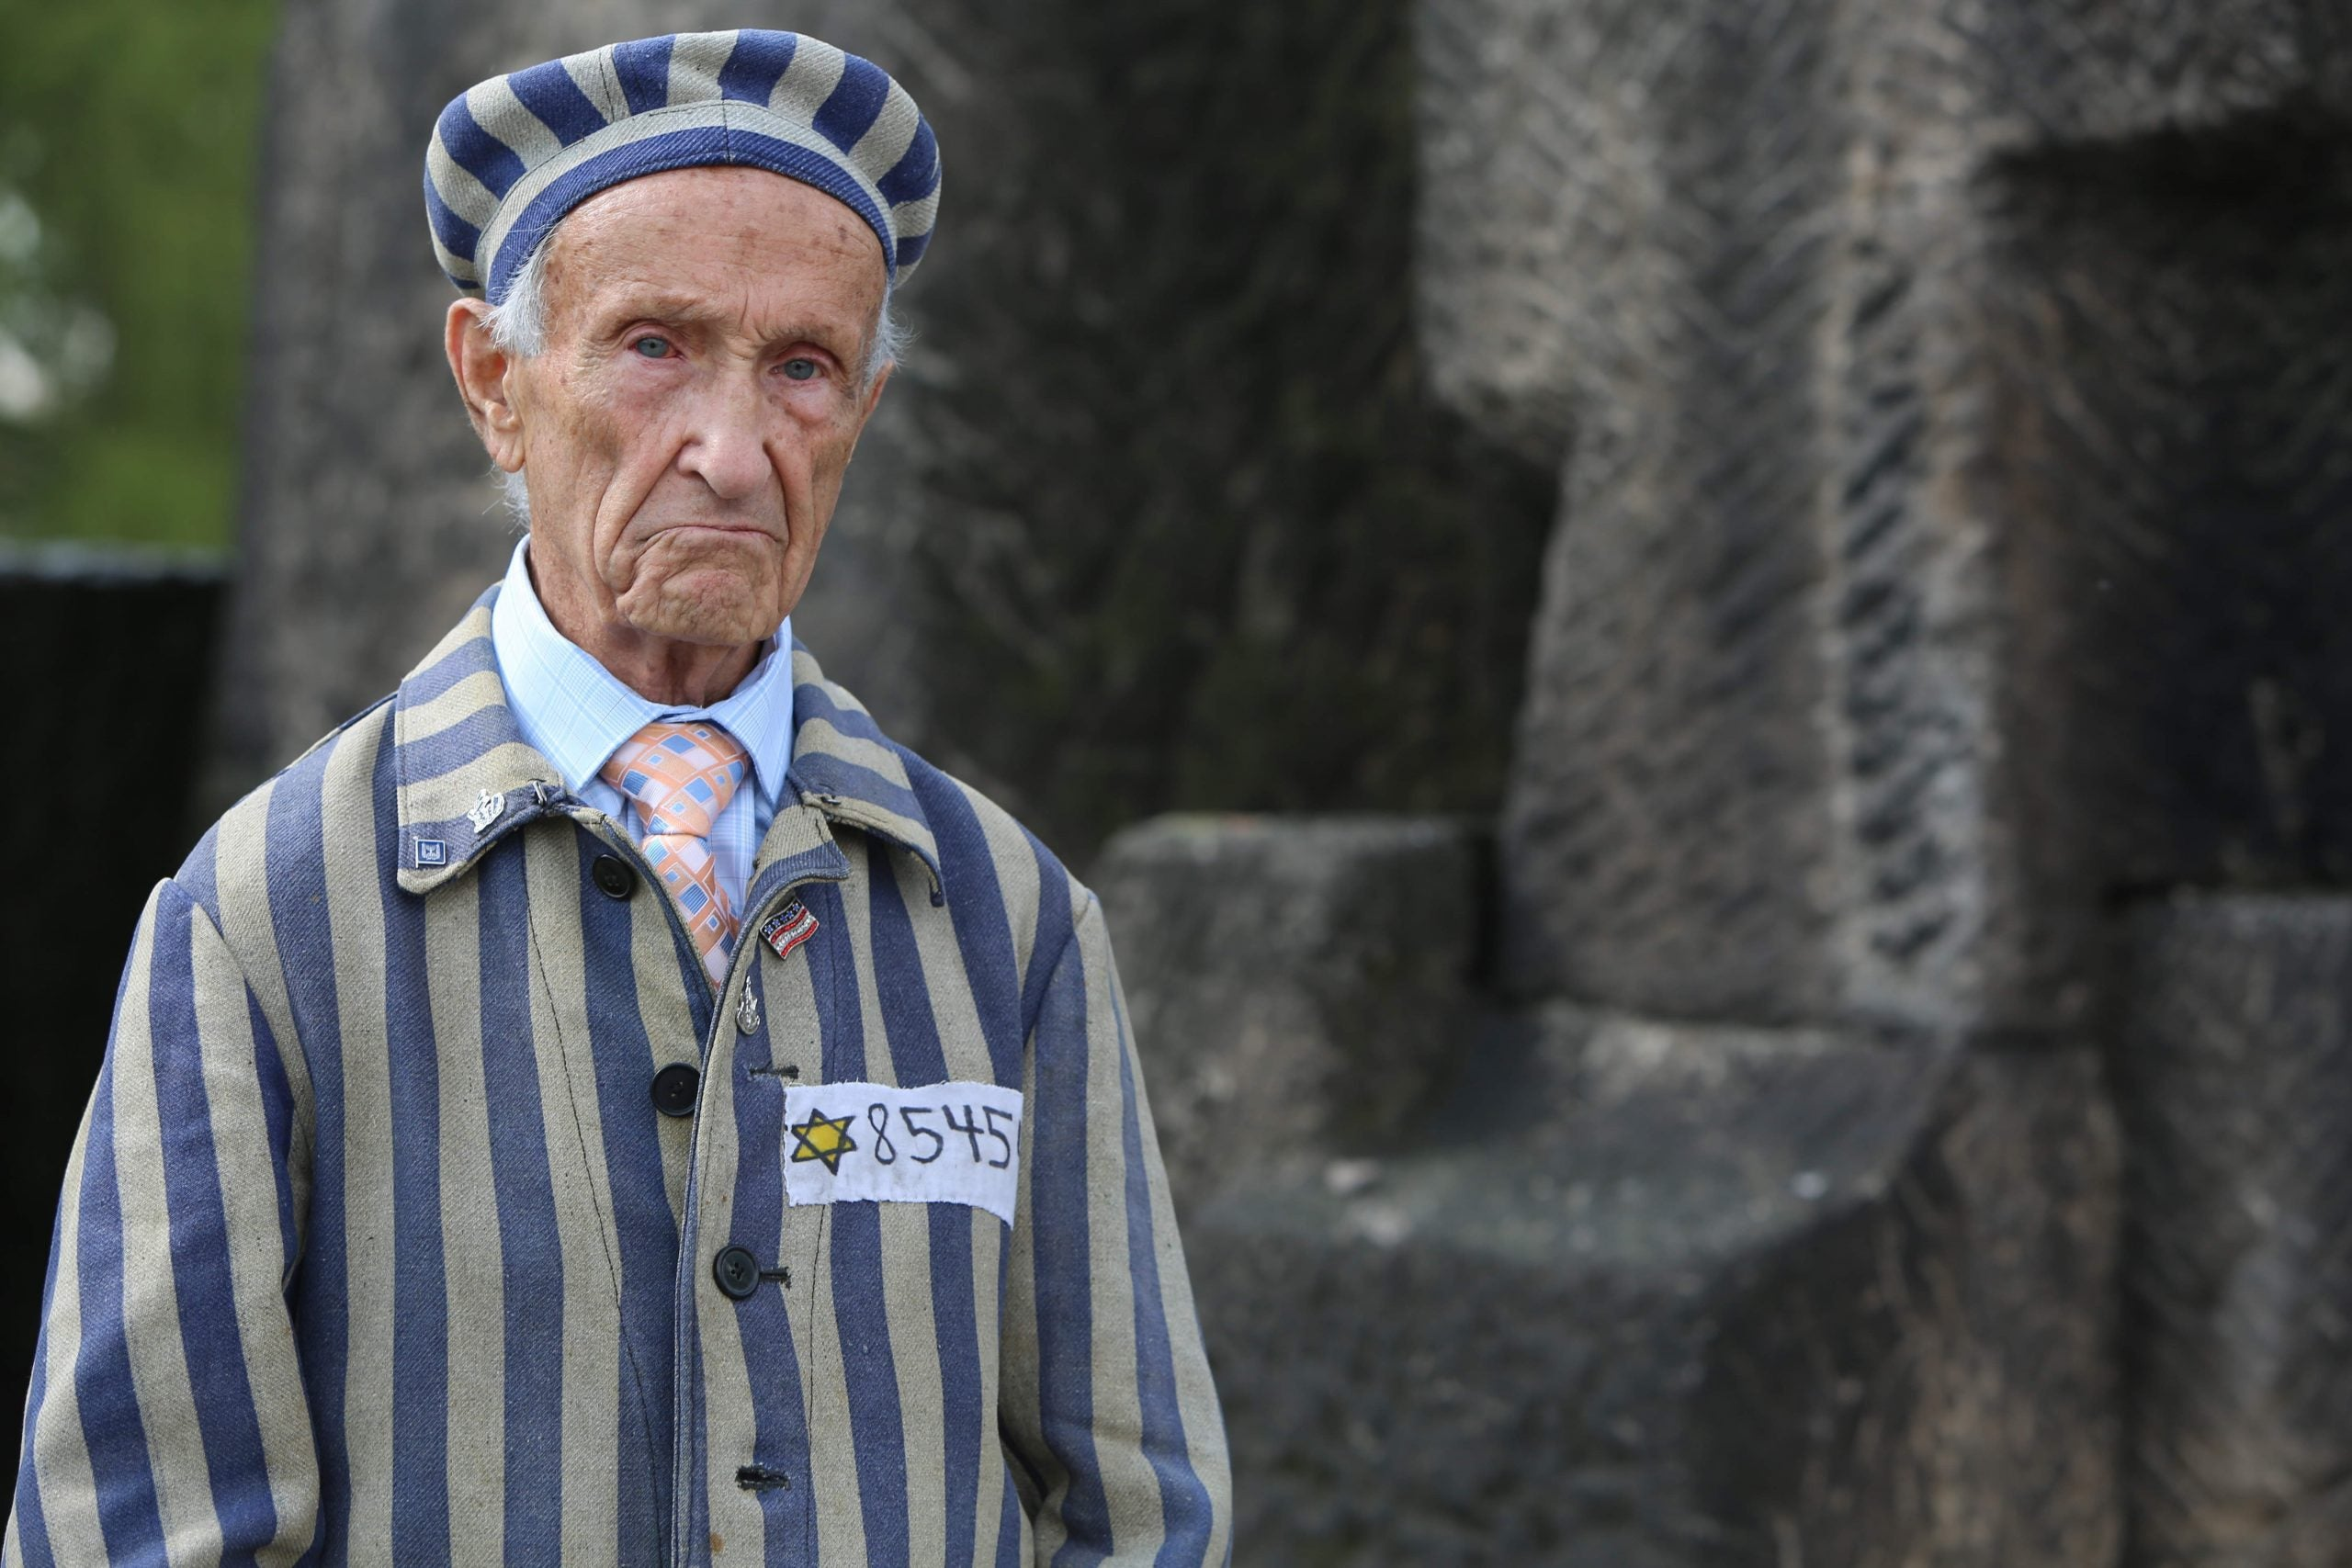 """""""Every day is Holocaust Day to me"""": concentration camp survivor Ed Mosberg on reliving trauma"""